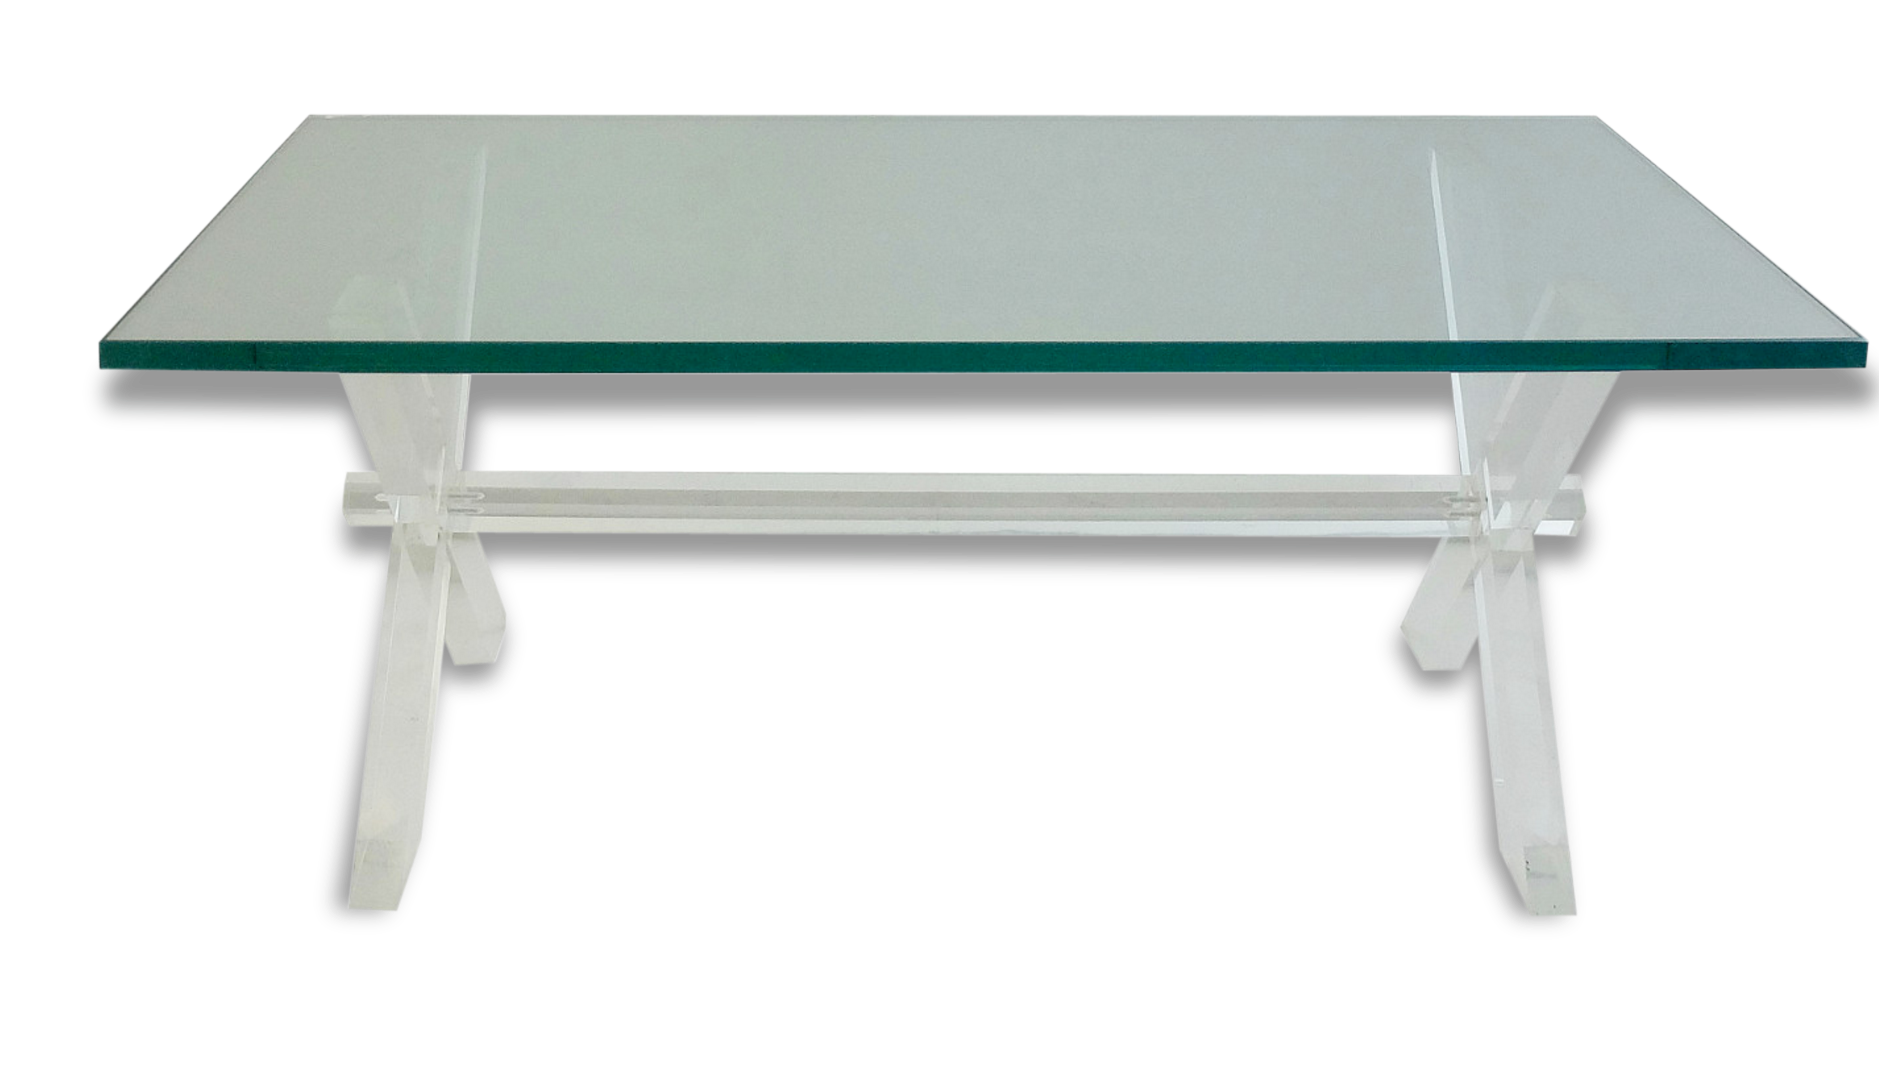 table-basse-plexiglas-et-verre_original Incroyable De Table Basse Gigogne Conforama